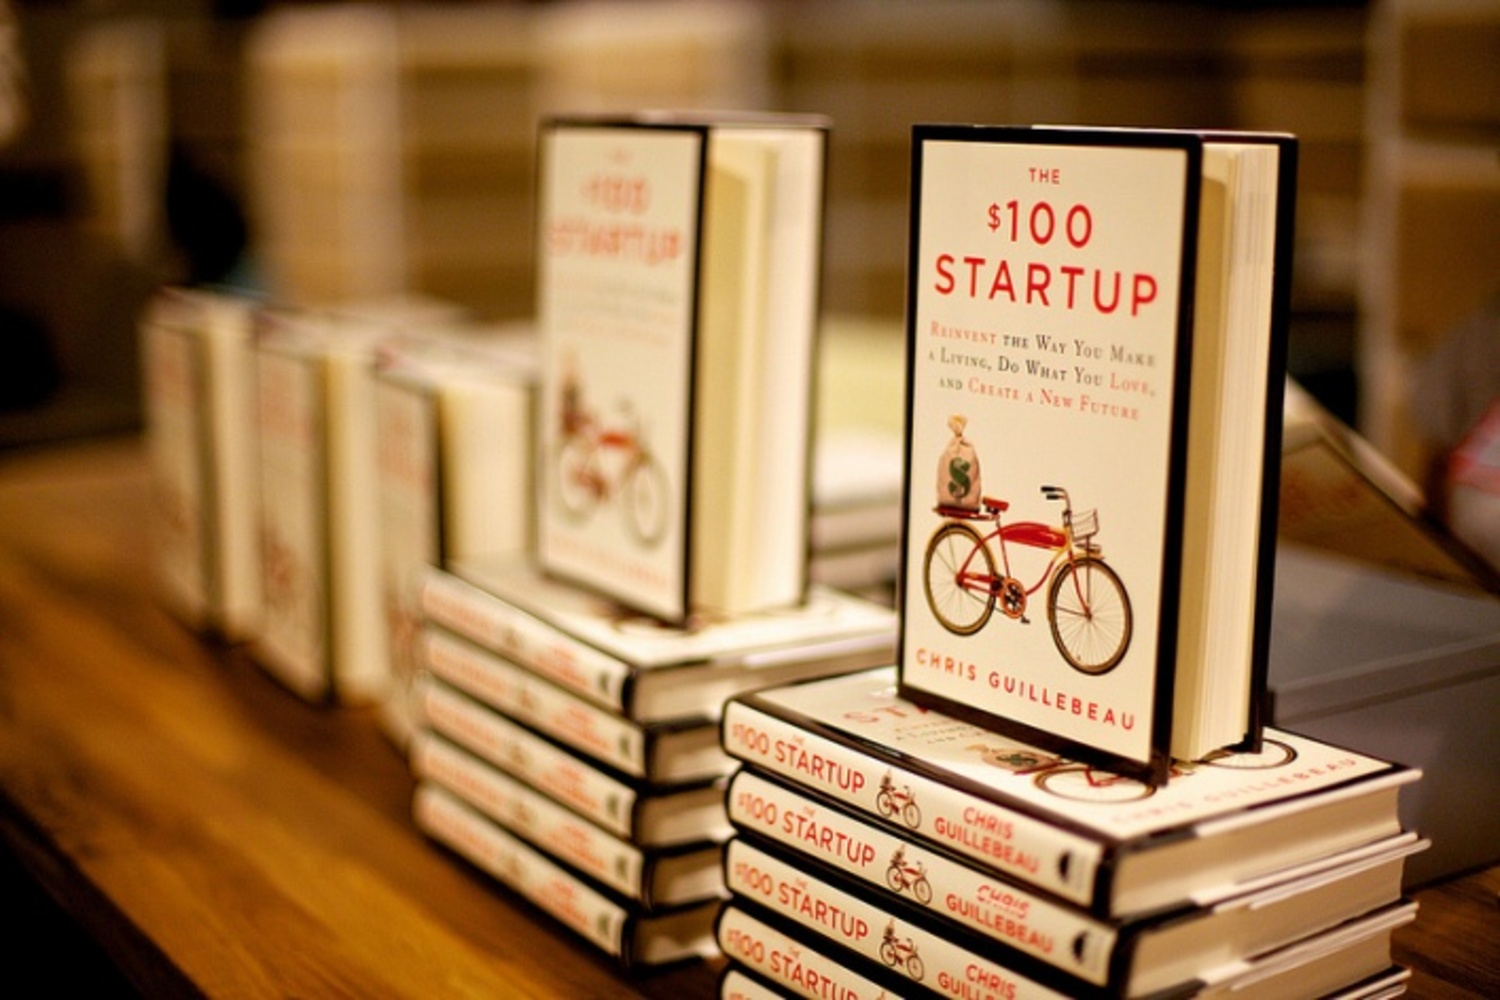 The $100 Startup —